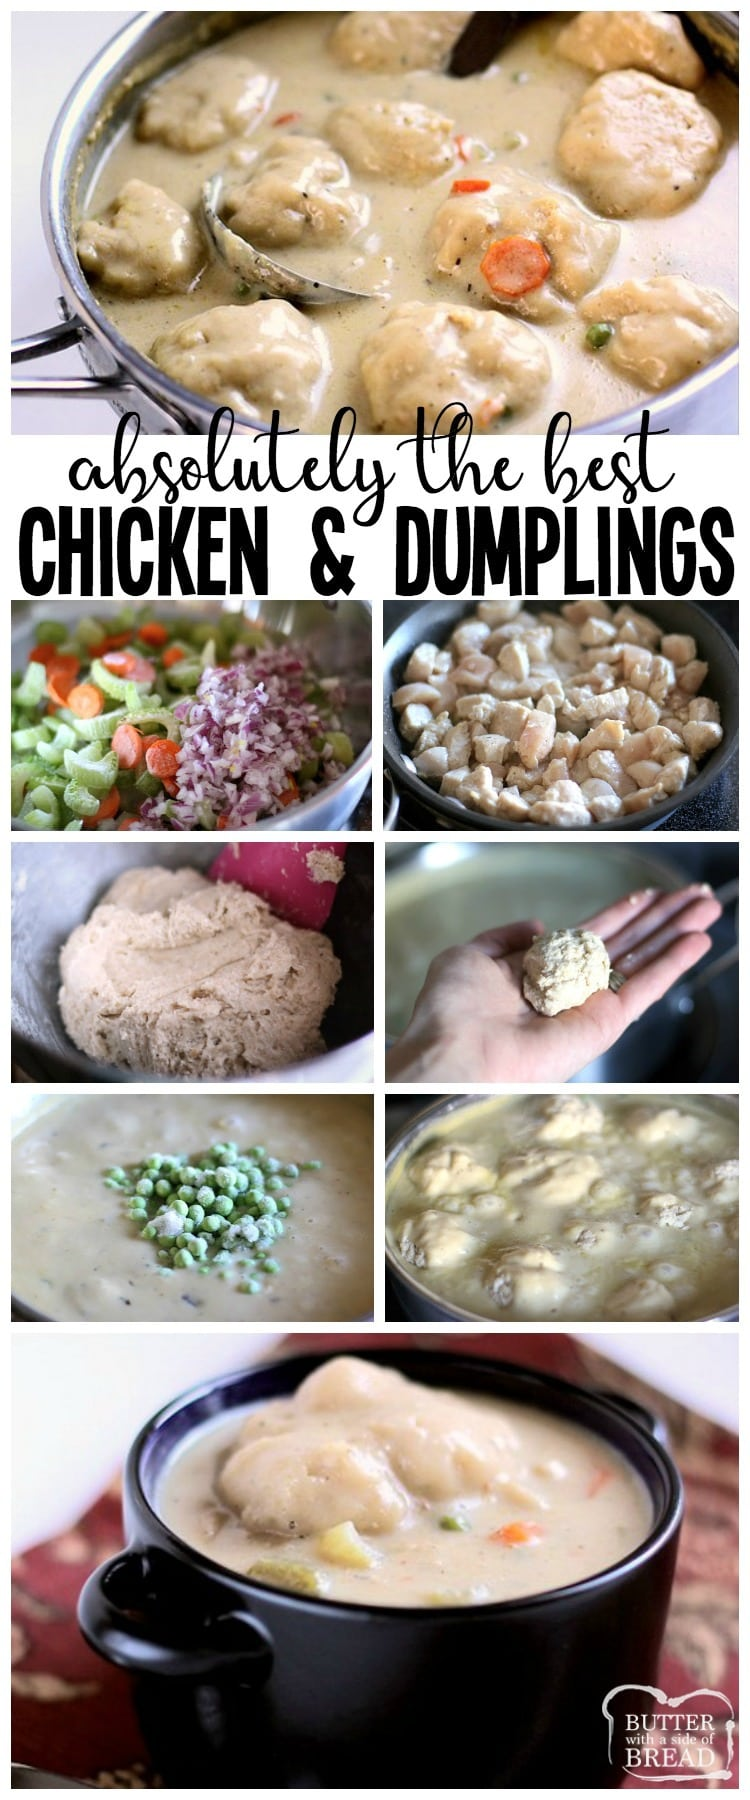 Chicken and Dumplings recipe made with juicy chicken, fresh vegetables and homemade biscuit dumplings. Seriously THE BEST homemade dumplings you've ever tasted. Simple tips to make this the best chicken dumplings dinner ever. #chicken #dinner #dumplings #chickenanddumplings #recipe #food